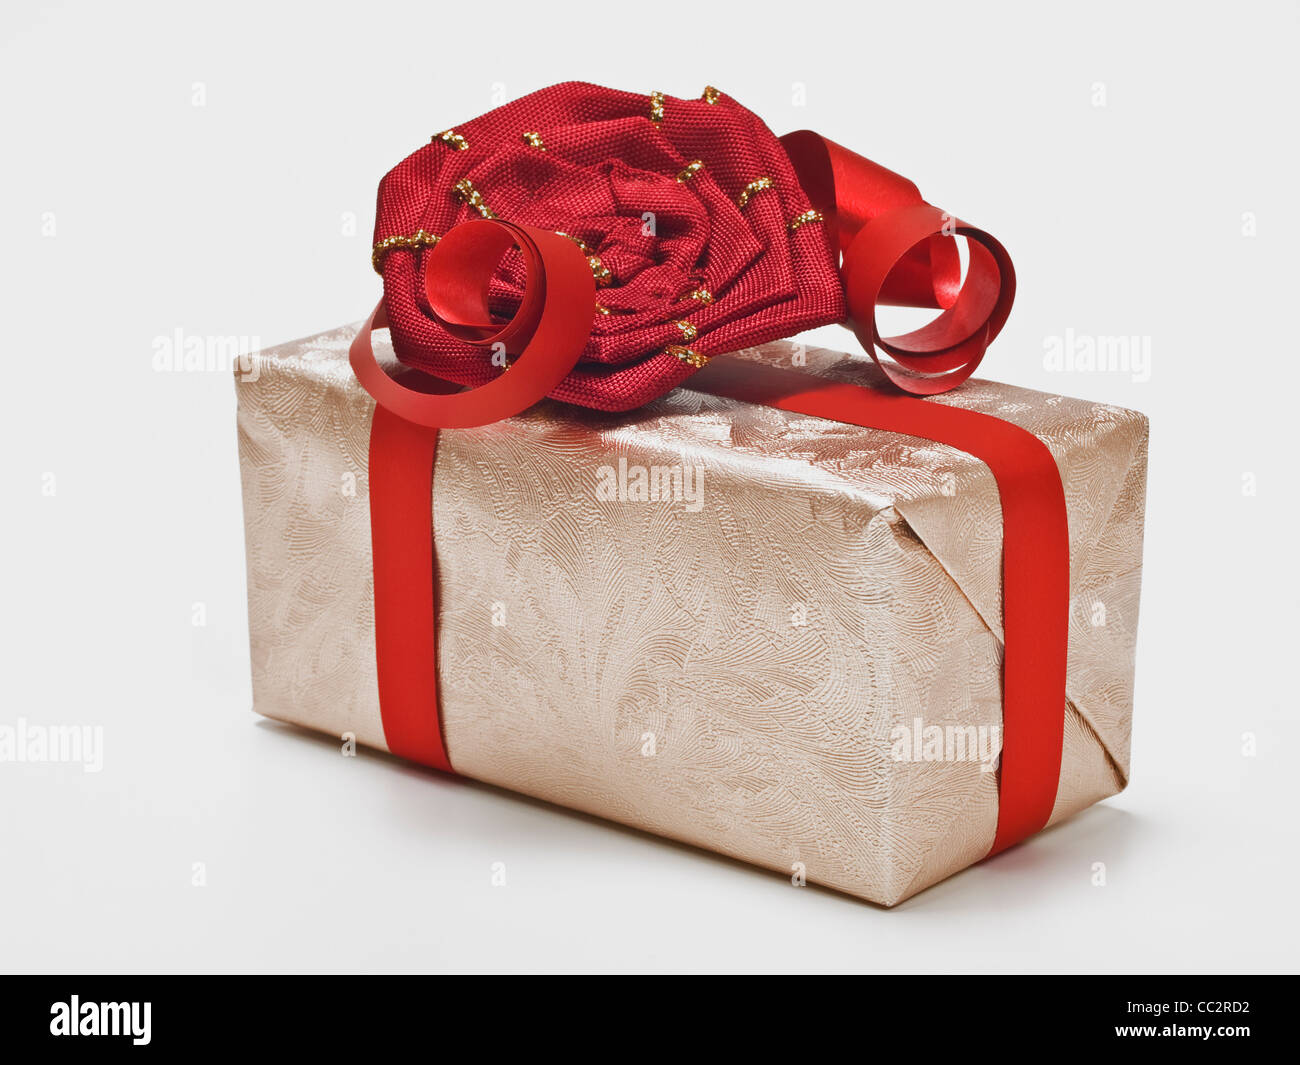 Detail photo of a present - Stock Image